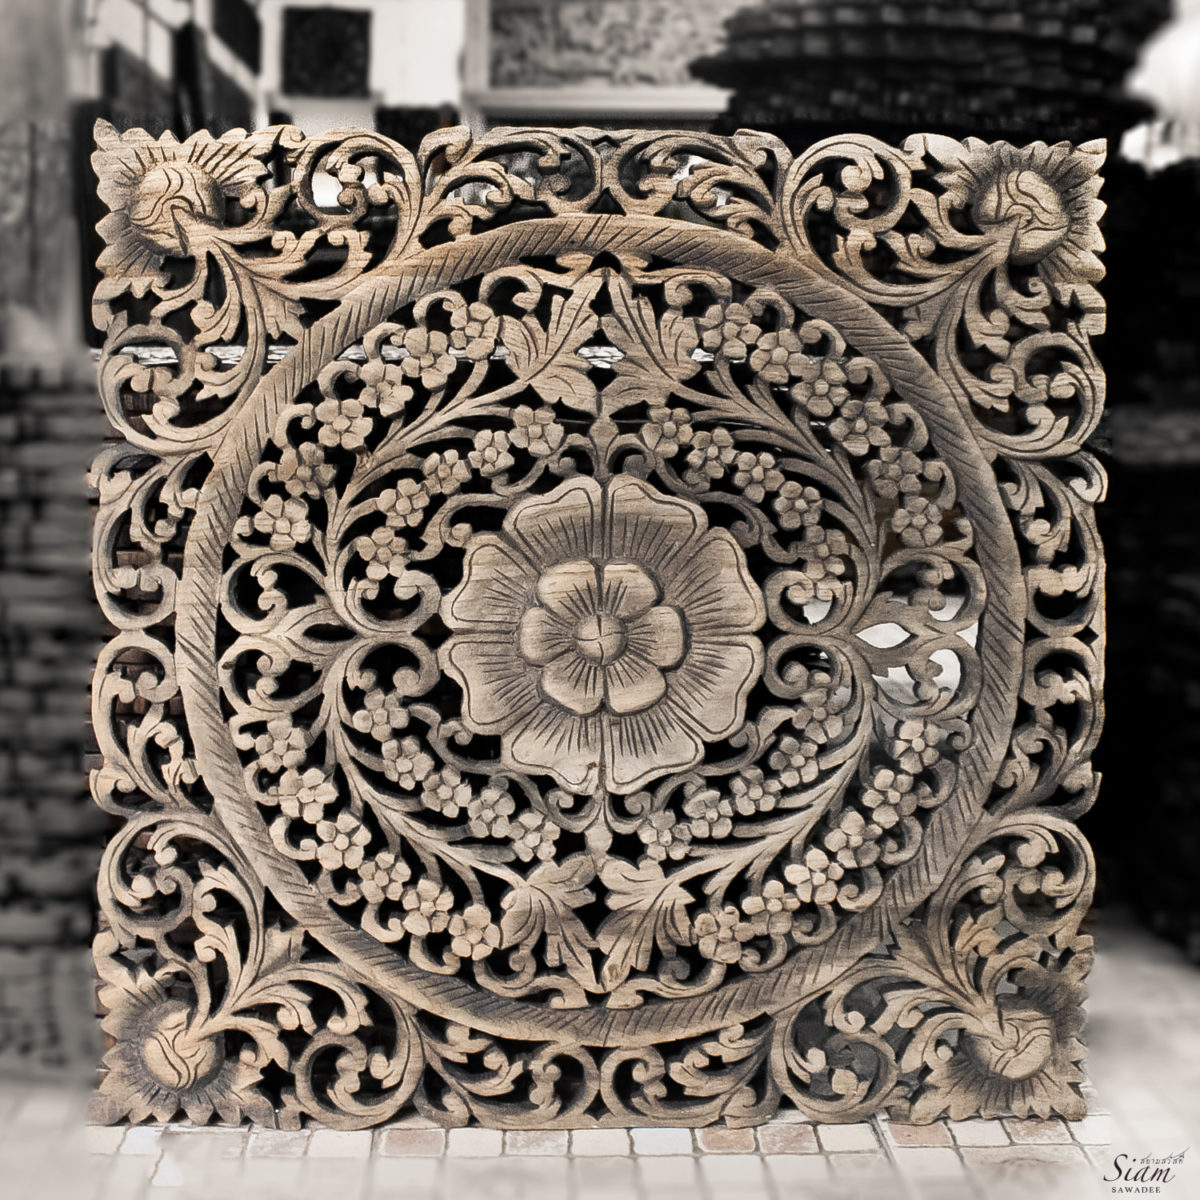 Decorative Wood Wall Panel. Traditional Floral Wood Carved Wall Hanging from Thailand 1200x1200 - Thai Motif Floral Carved Wood Wall Hanging